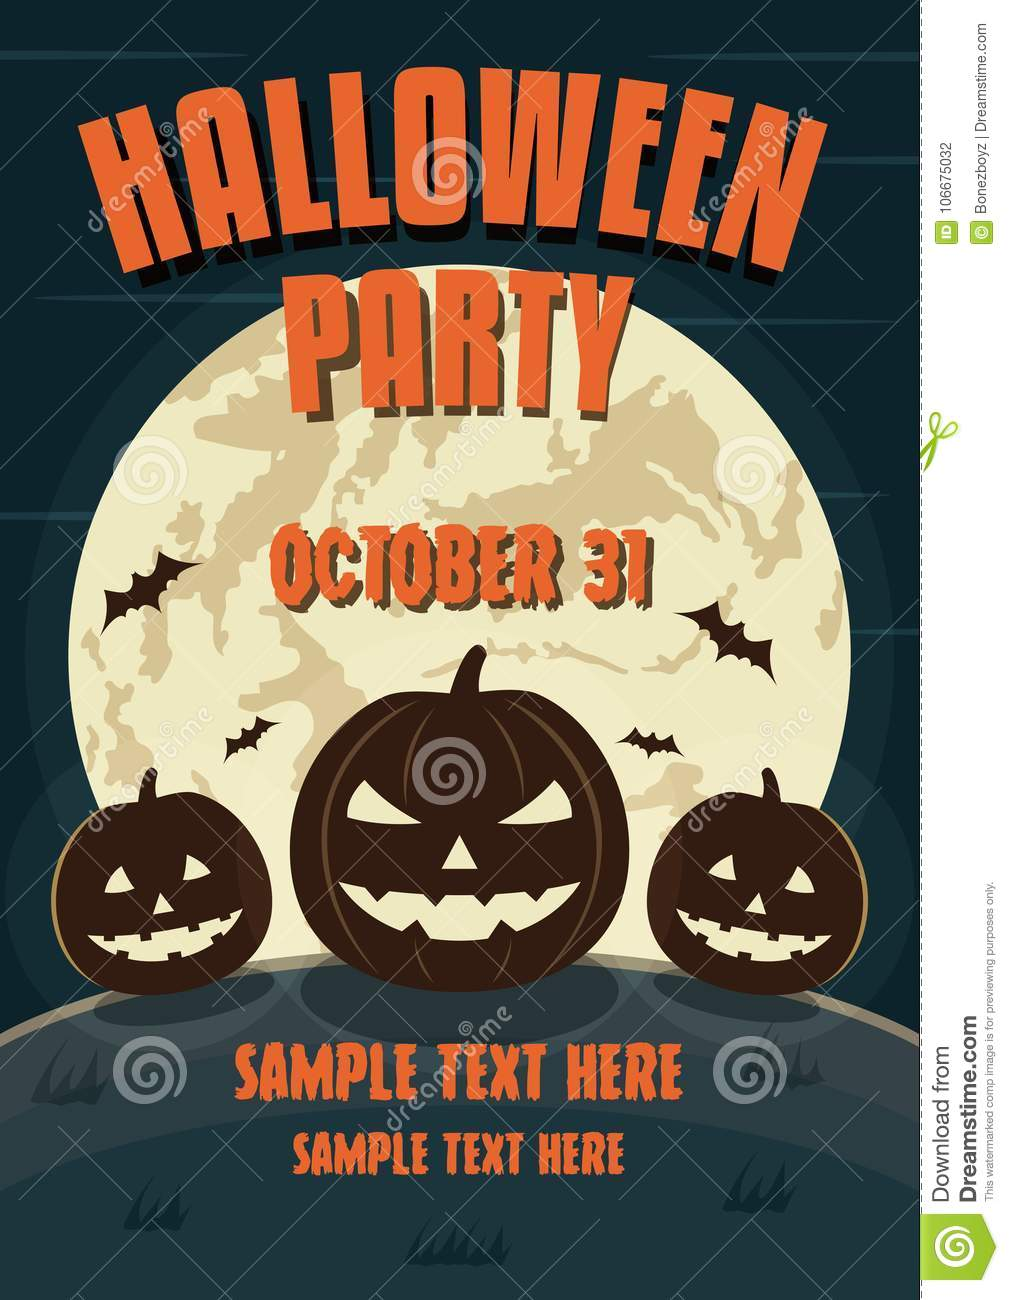 halloween party design template with pumpkins and place for text